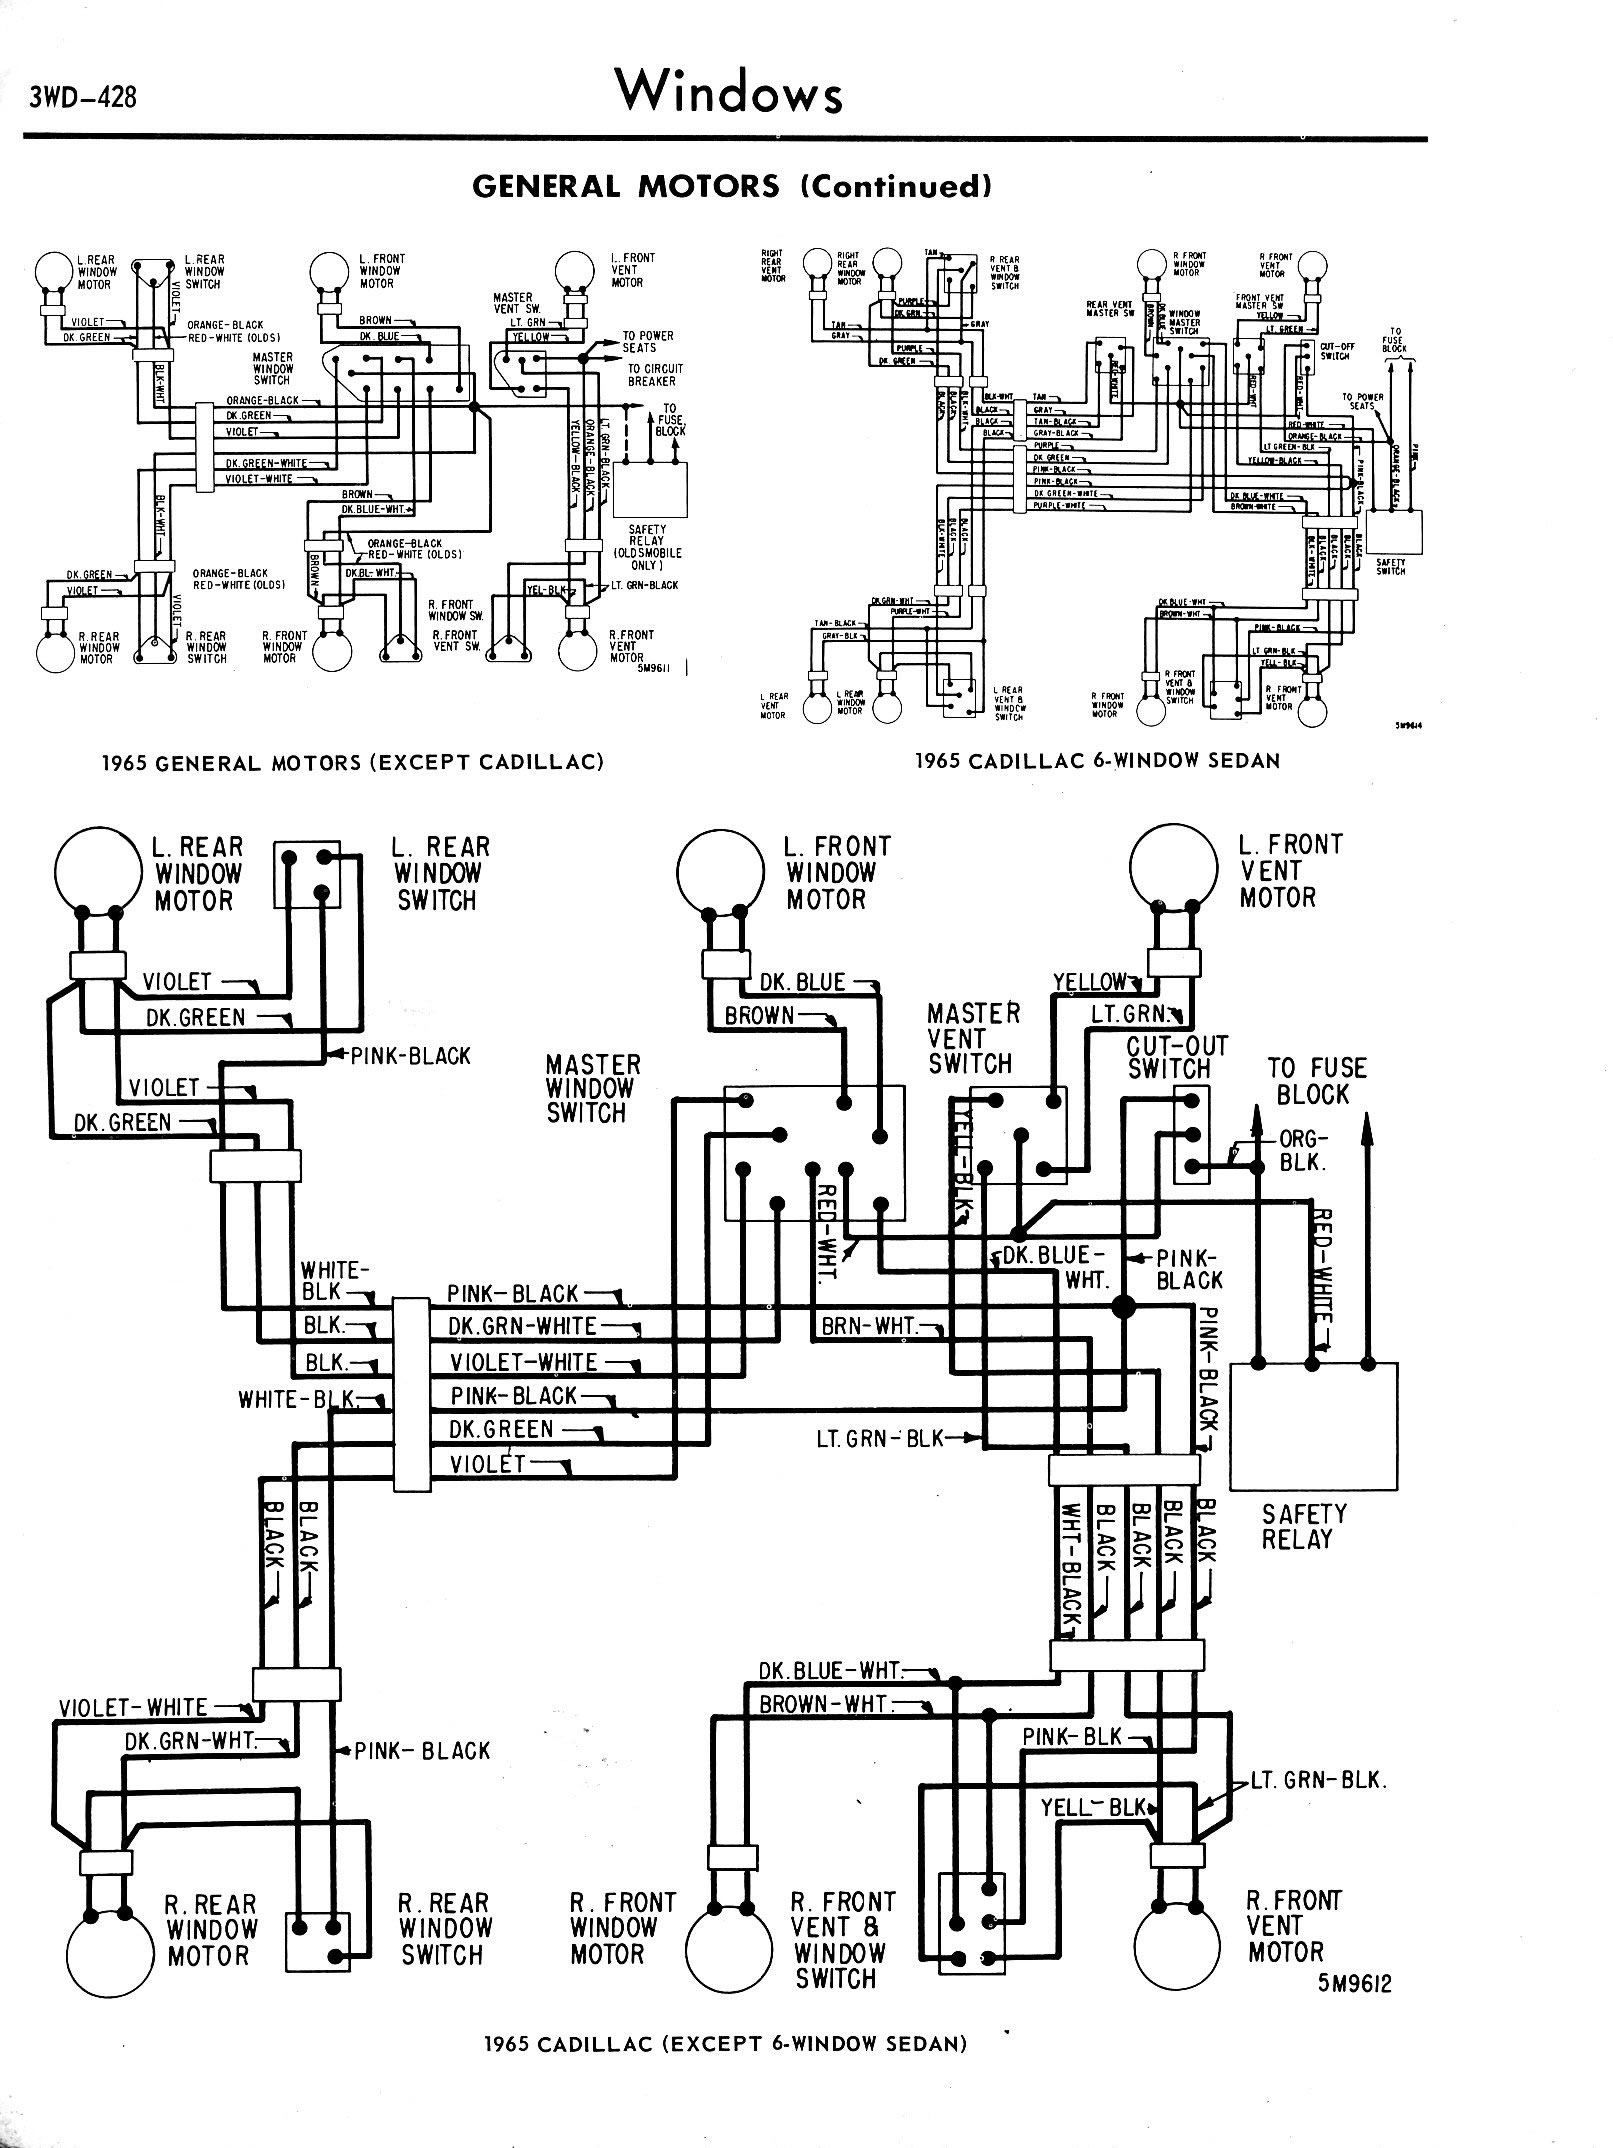 1965 malibu flasher relay wiring diagram wiring library rh 23 codingcommunity de Flasher Circuit Diagram 3